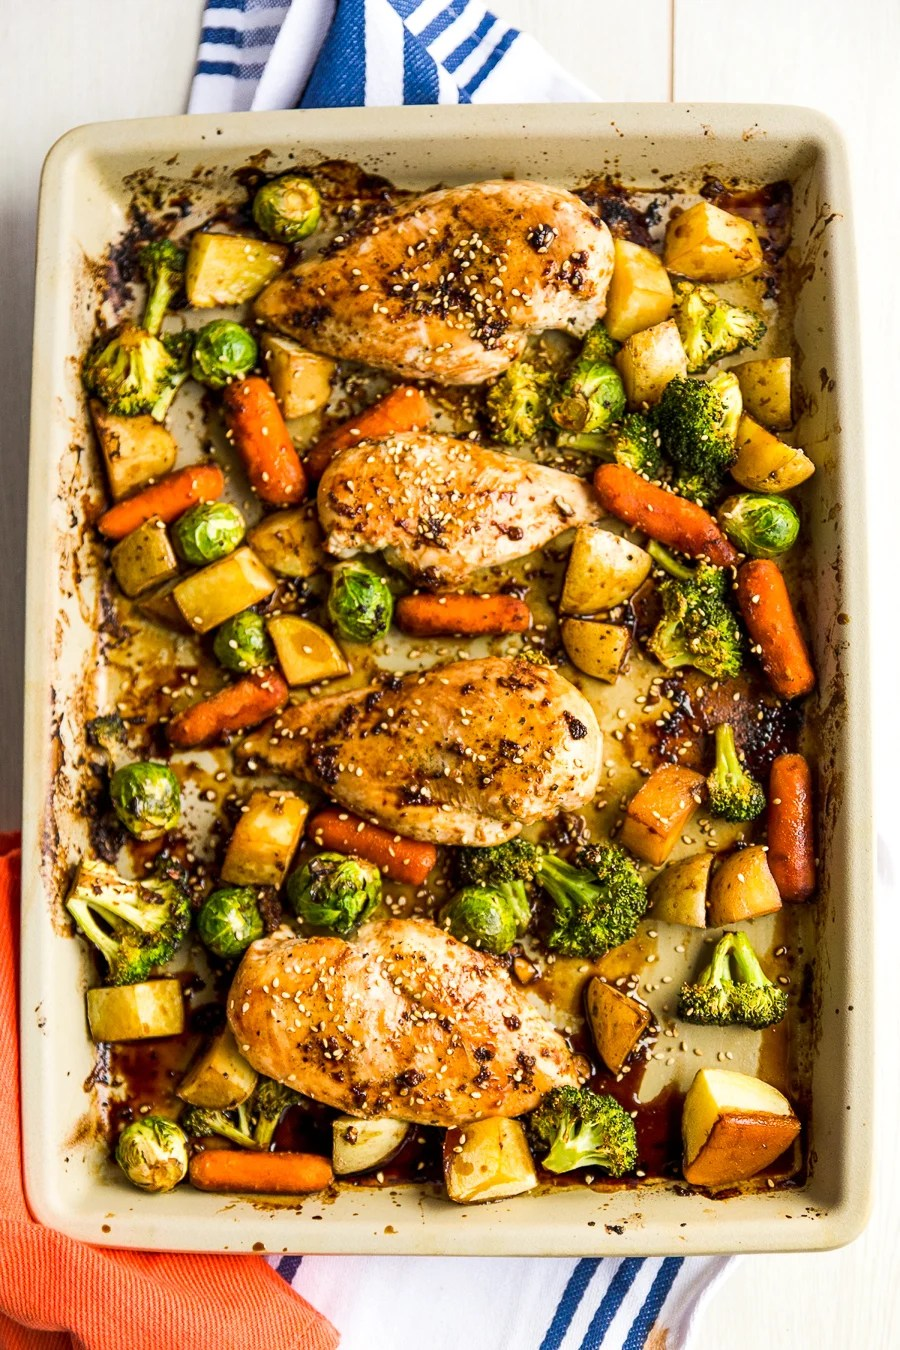 This Honey Ginger Chicken Sheet Pan Dinner is an easy Asian-inspired dish made with a tangy homemade sauce. You only need one pan to make it, so cleanup is a breeze!